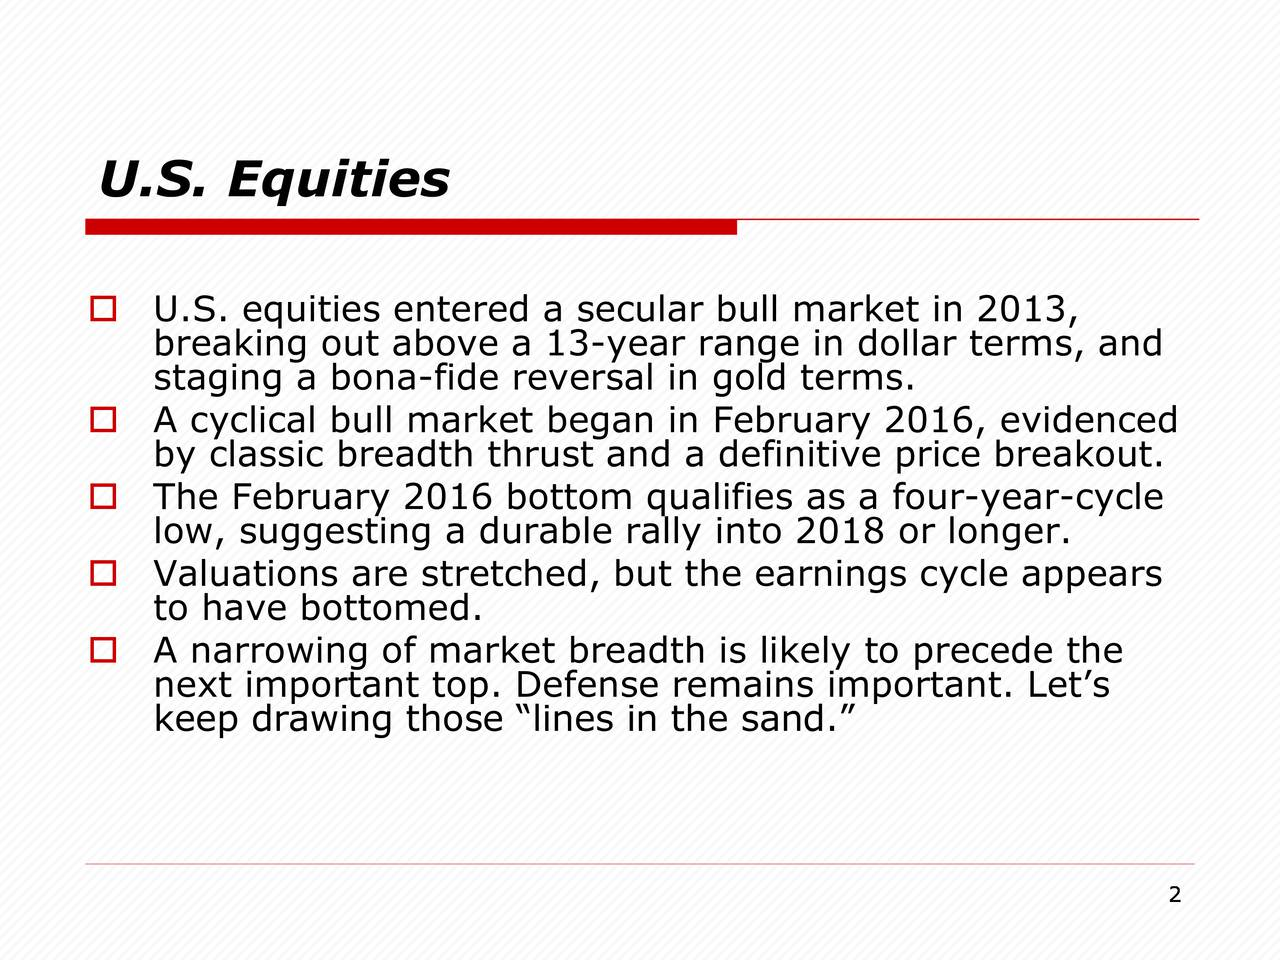 U.S. equities entered a secular bull market in 2013, breaking out above a 13-year range in dollar terms, and staging a bona-fide reversal in gold terms. A cyclical bull market began in February 2016, evidenced by classic breadth thrust and a definitive price breakout. The February 2016 bottom qualifies as a four-year-cycle low, suggesting a durable rally into 2018 or longer. Valuations are stretched, but the earnings cycle appears to have bottomed. A narrowing of market breadth is likely to precede the next important top. Defense remains important. Lets keep drawing those lines in the sand. 2